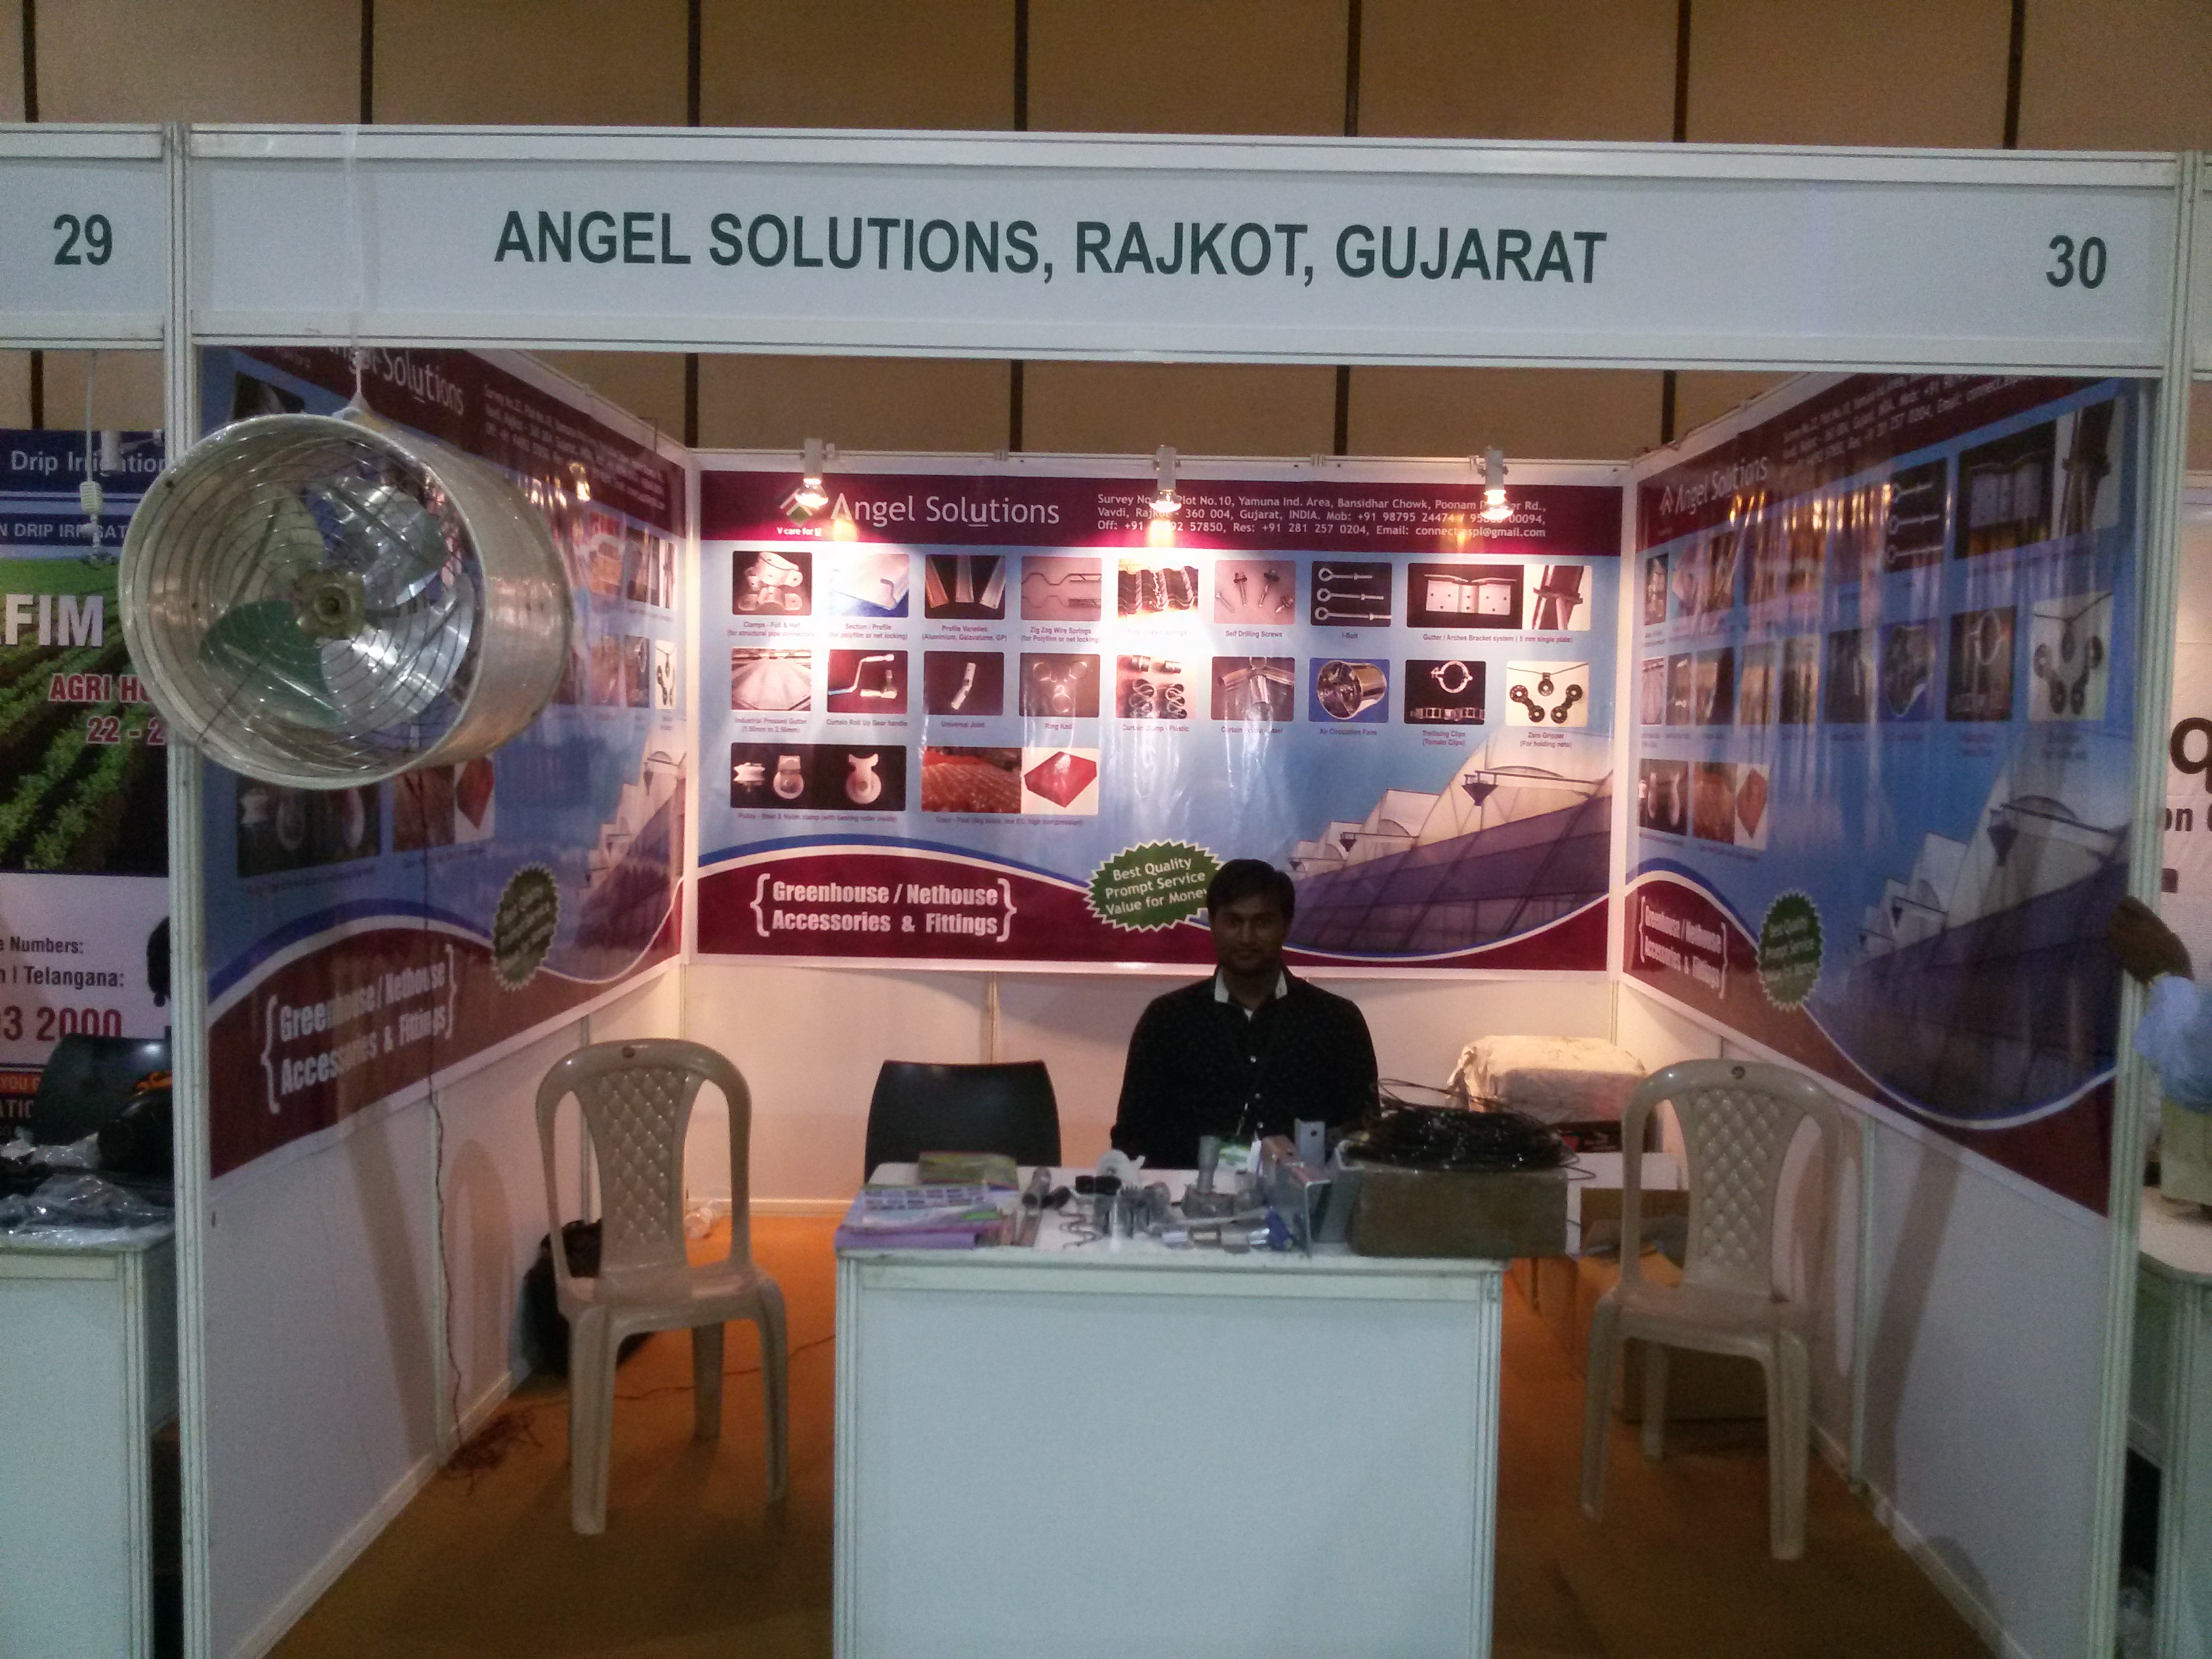 2016, AGRI HORTI TECH, HYDERABAD, INDIA